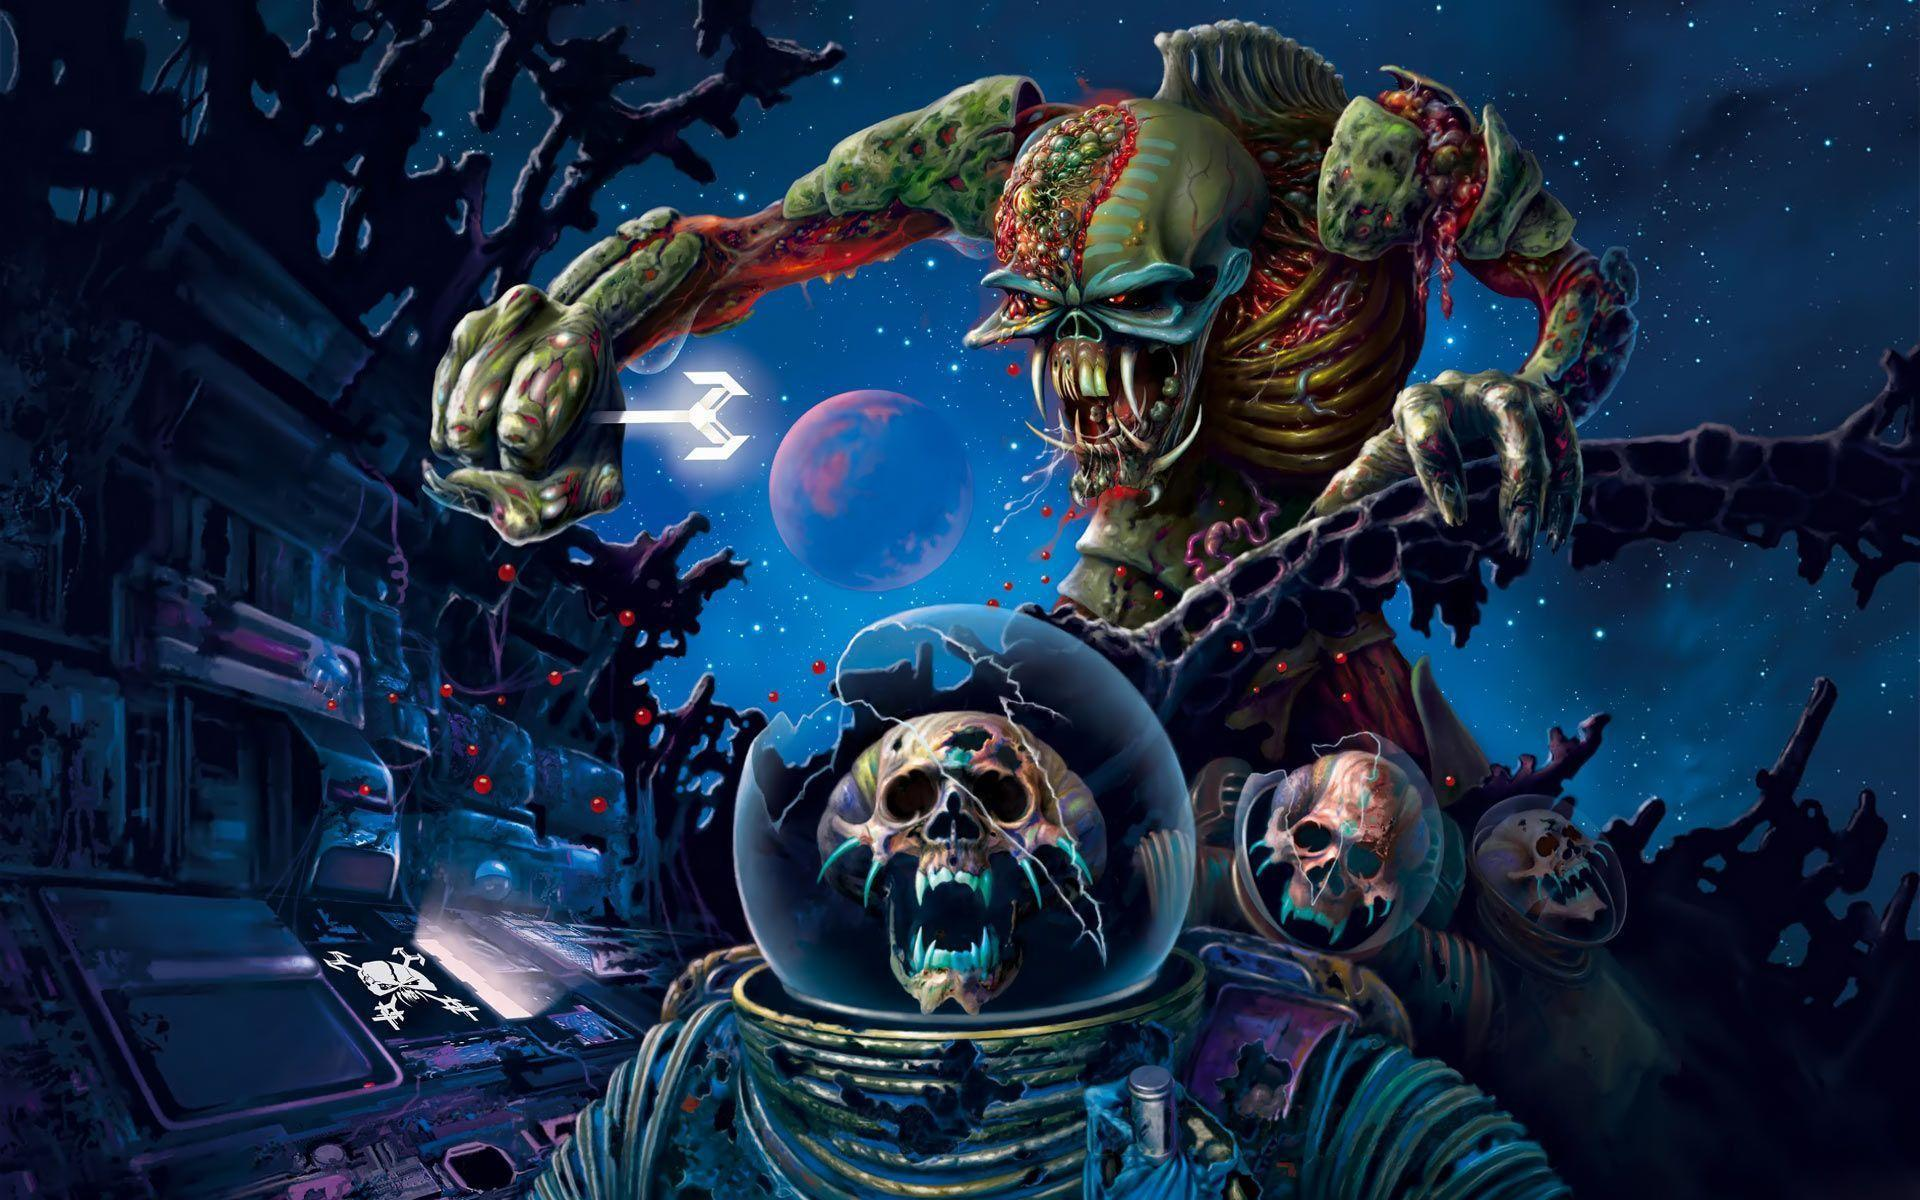 Desktop Wallpapers · Celebrities · Music · Iron Maiden Heavy metal